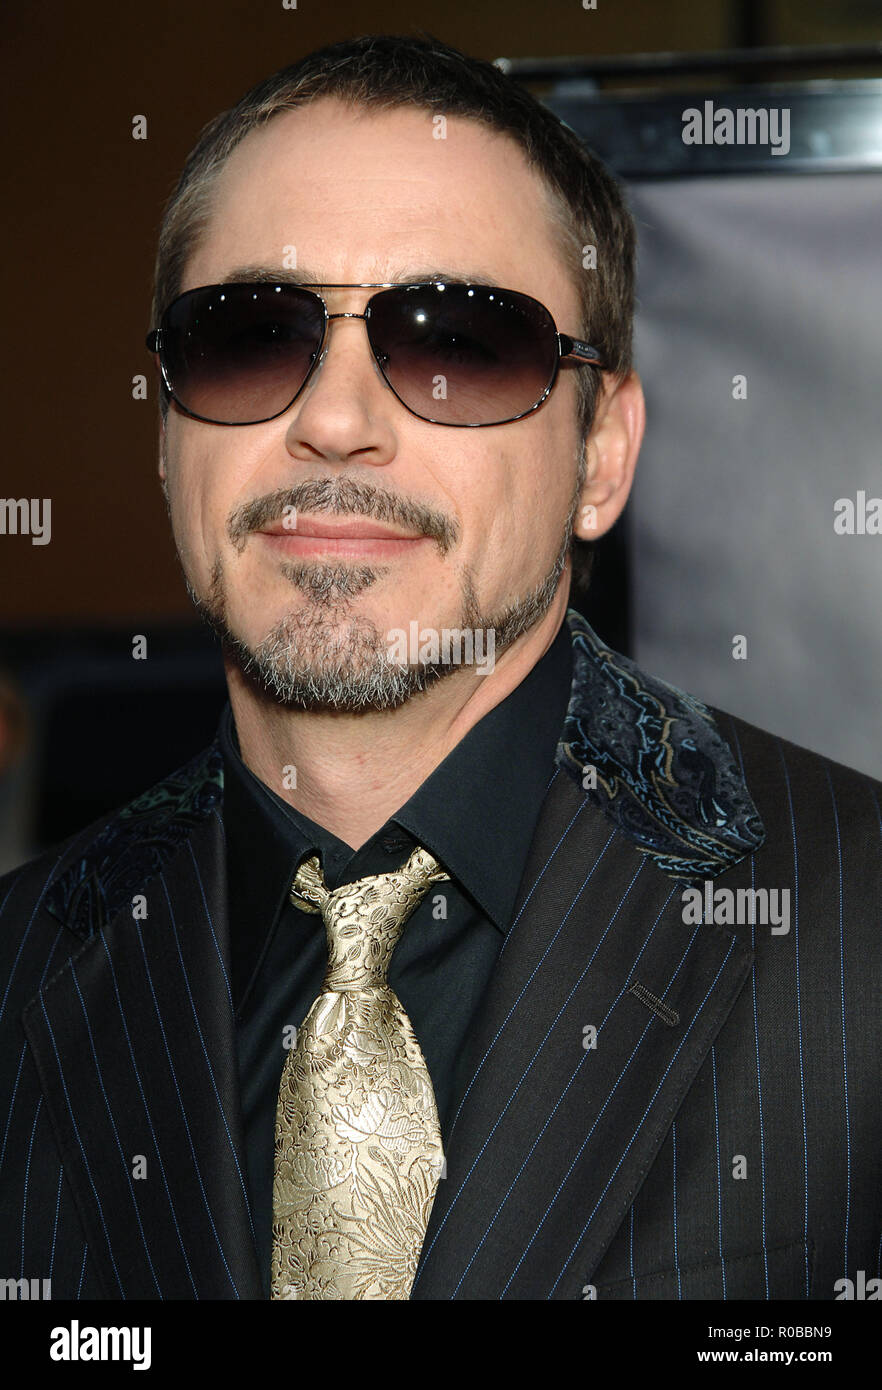 Robert Downey Jr The Iron Man Premiere At The Chinese Theatre In Los Angeles Headshot Eye Contactdowneyjrrobert 28 Red Carpet Event Vertical Usa Film Industry Celebrities Photography Bestof Arts Culture And